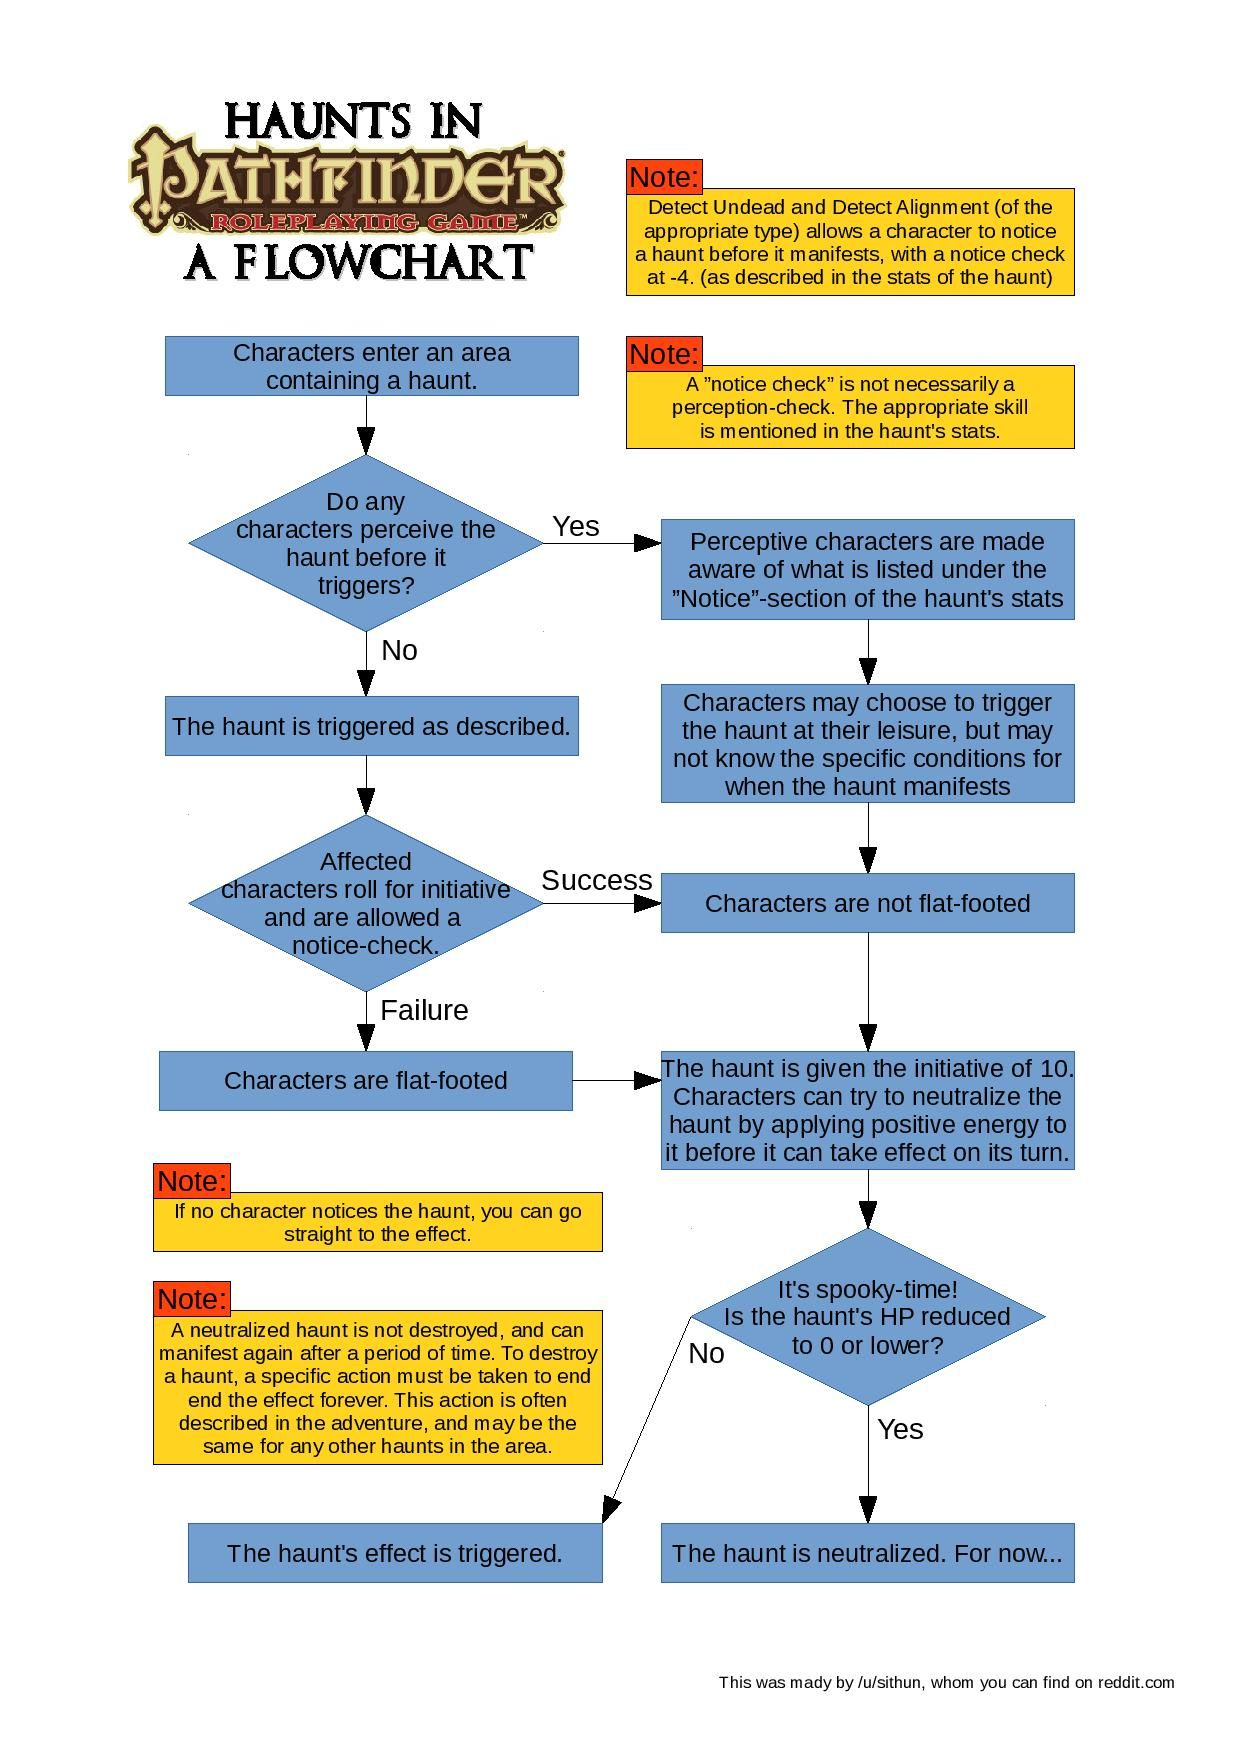 With Halloween Approaching I Made A Flowchart For Handling Ghosts And Haunts In Pathfinder Album On Imgur Pathfinder Flow Chart Pathfinder Rpg